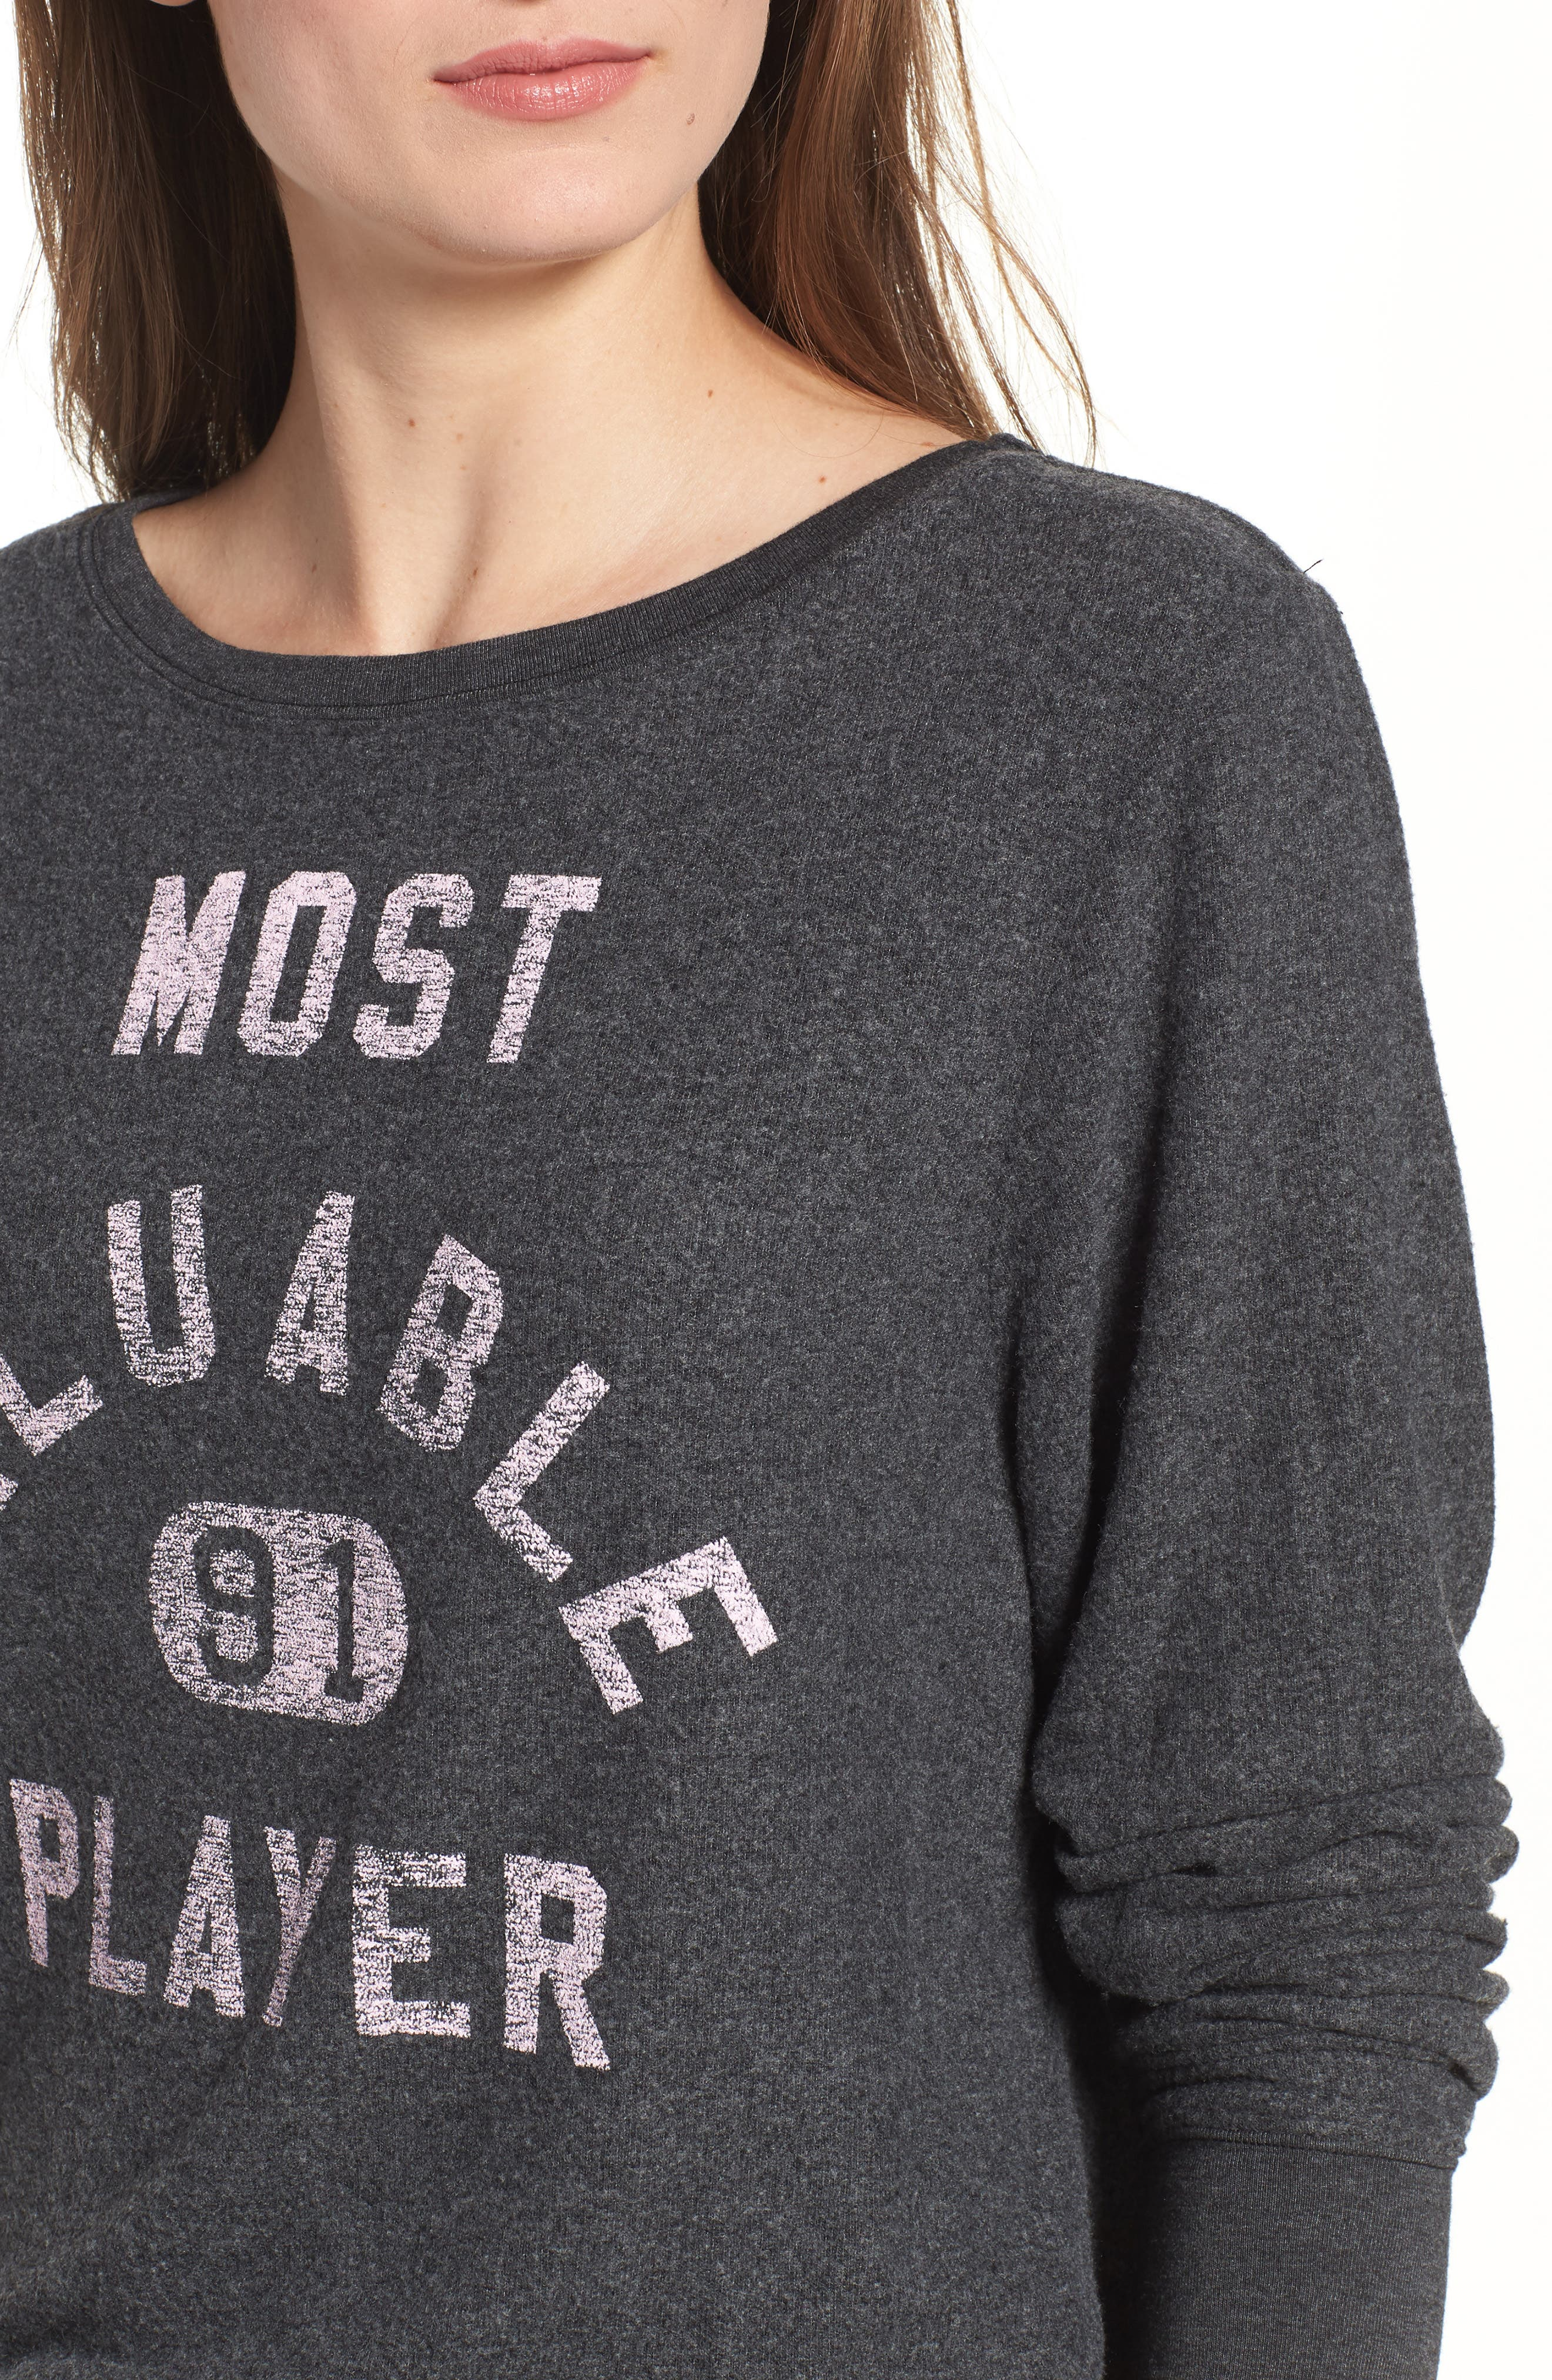 Most Valuable Player Baggy Beach Jumper Sweatshirt,                             Alternate thumbnail 4, color,                             002